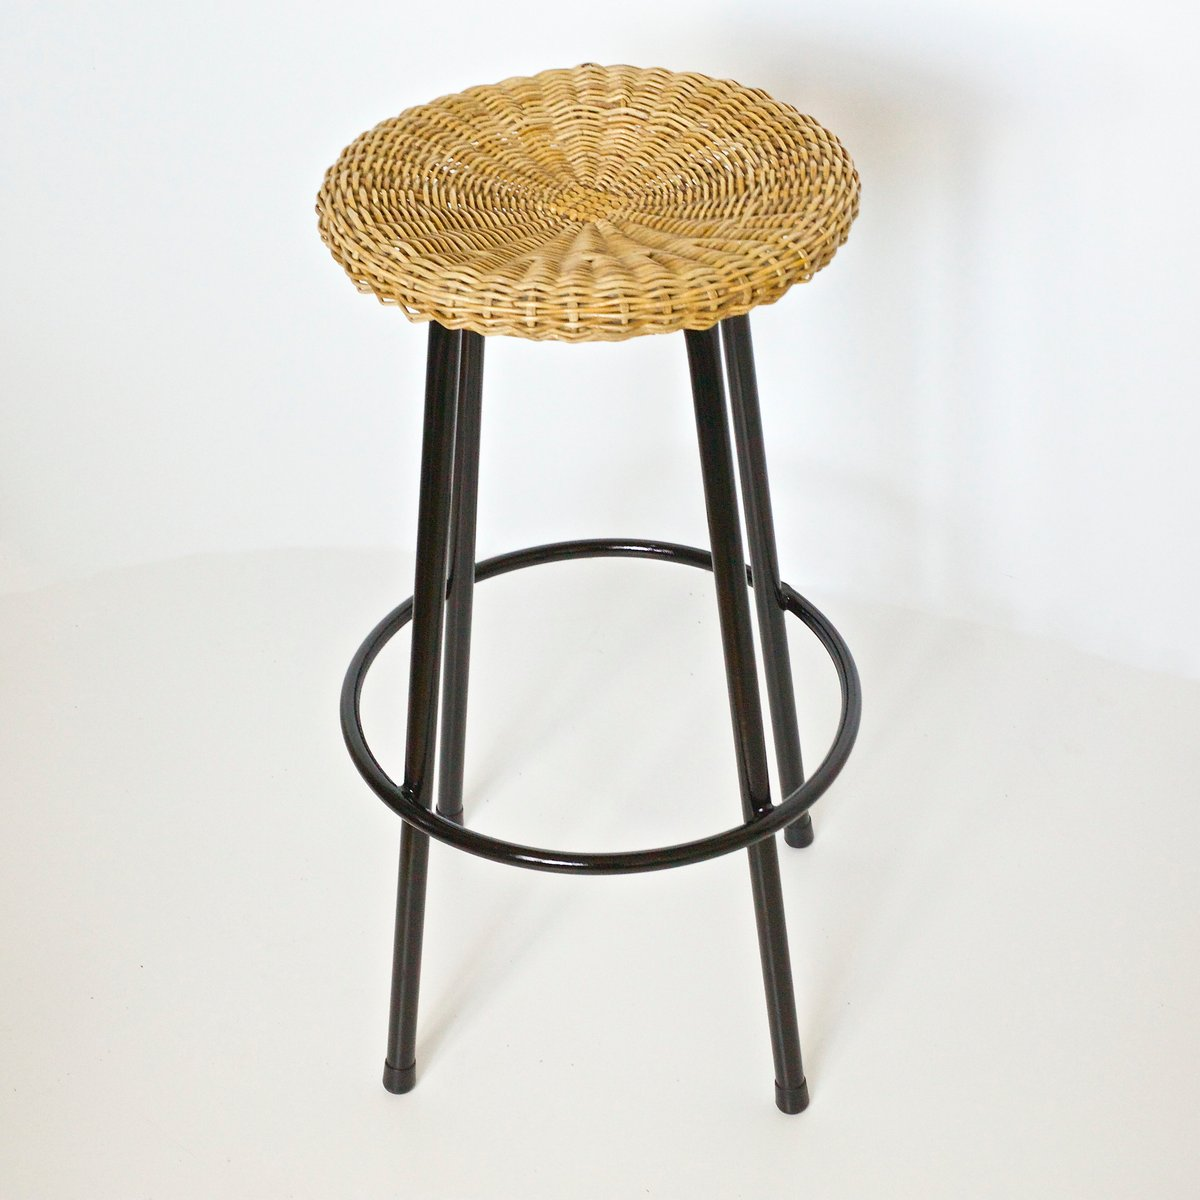 Vintage High Wicker Bar Stool From Rohe Noordwolde 1950s